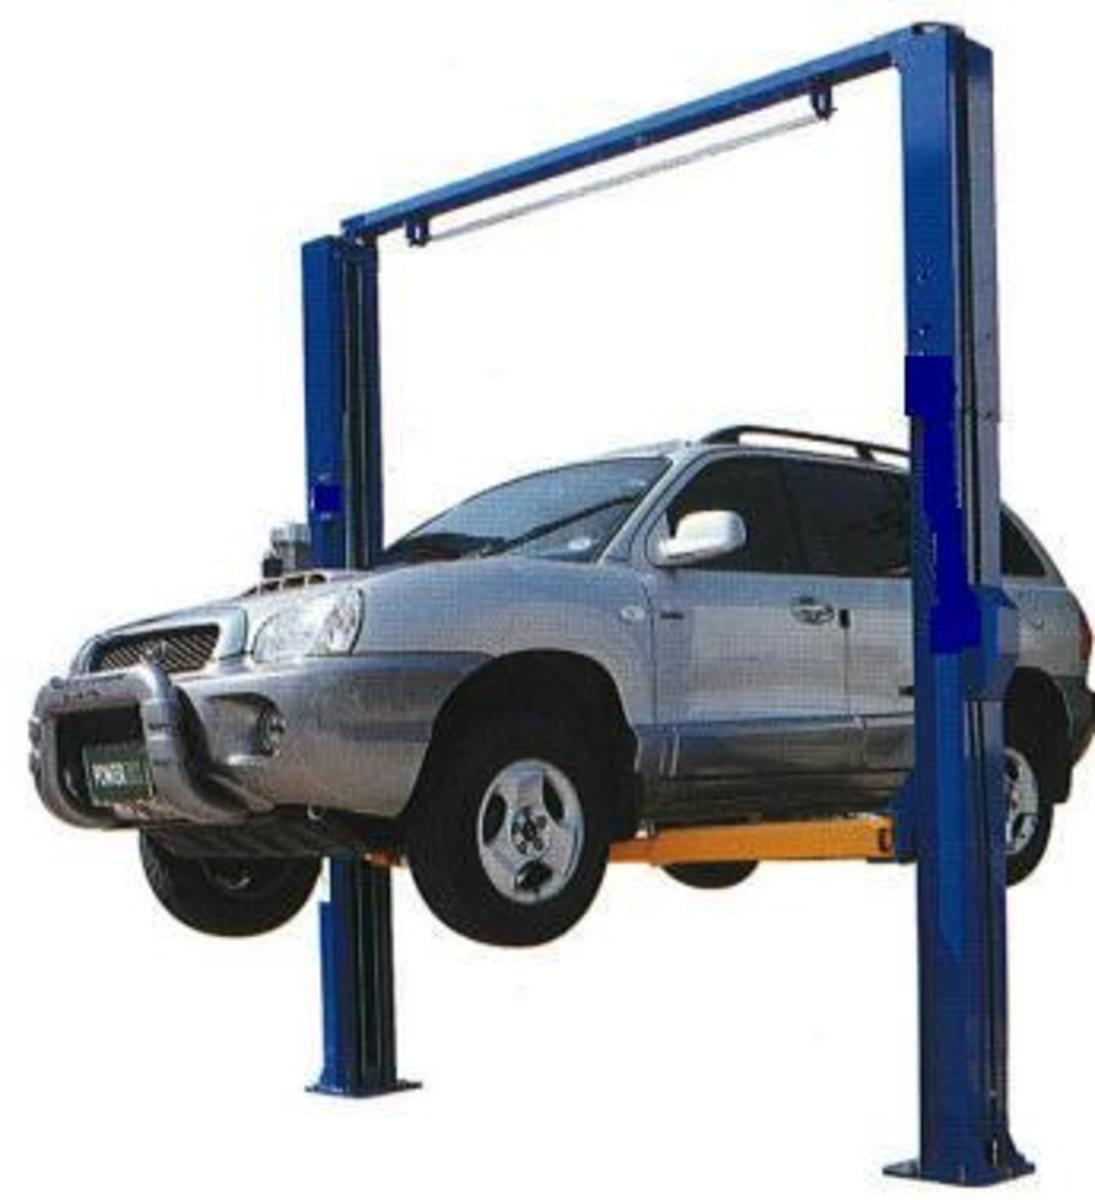 Auto repair shop lift or hoist. This is a 2 post clear span or clear floor hoist.